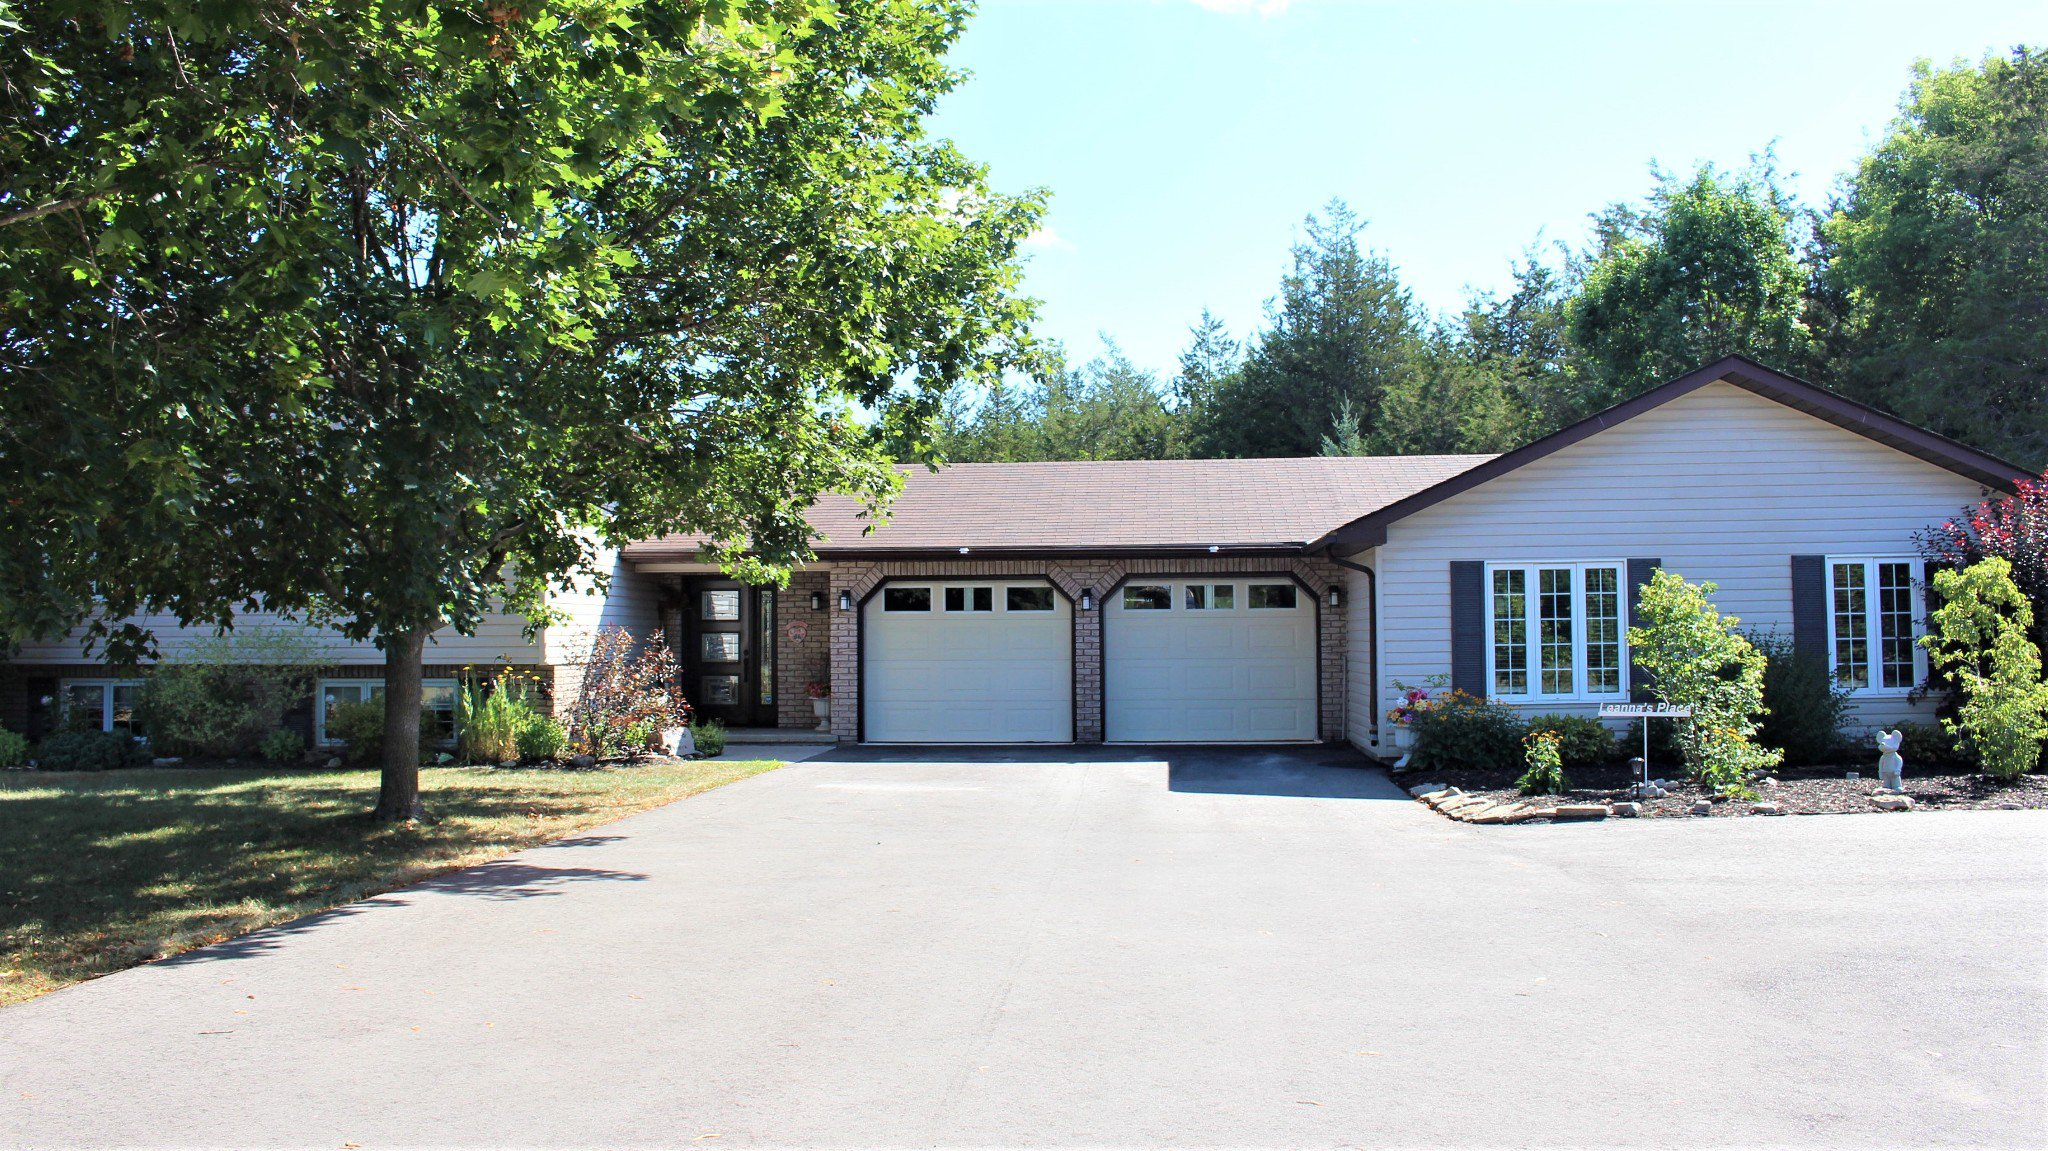 Main Photo: 445 County 8 Road in Campbellford: Residential Detached for sale : MLS®# 277773